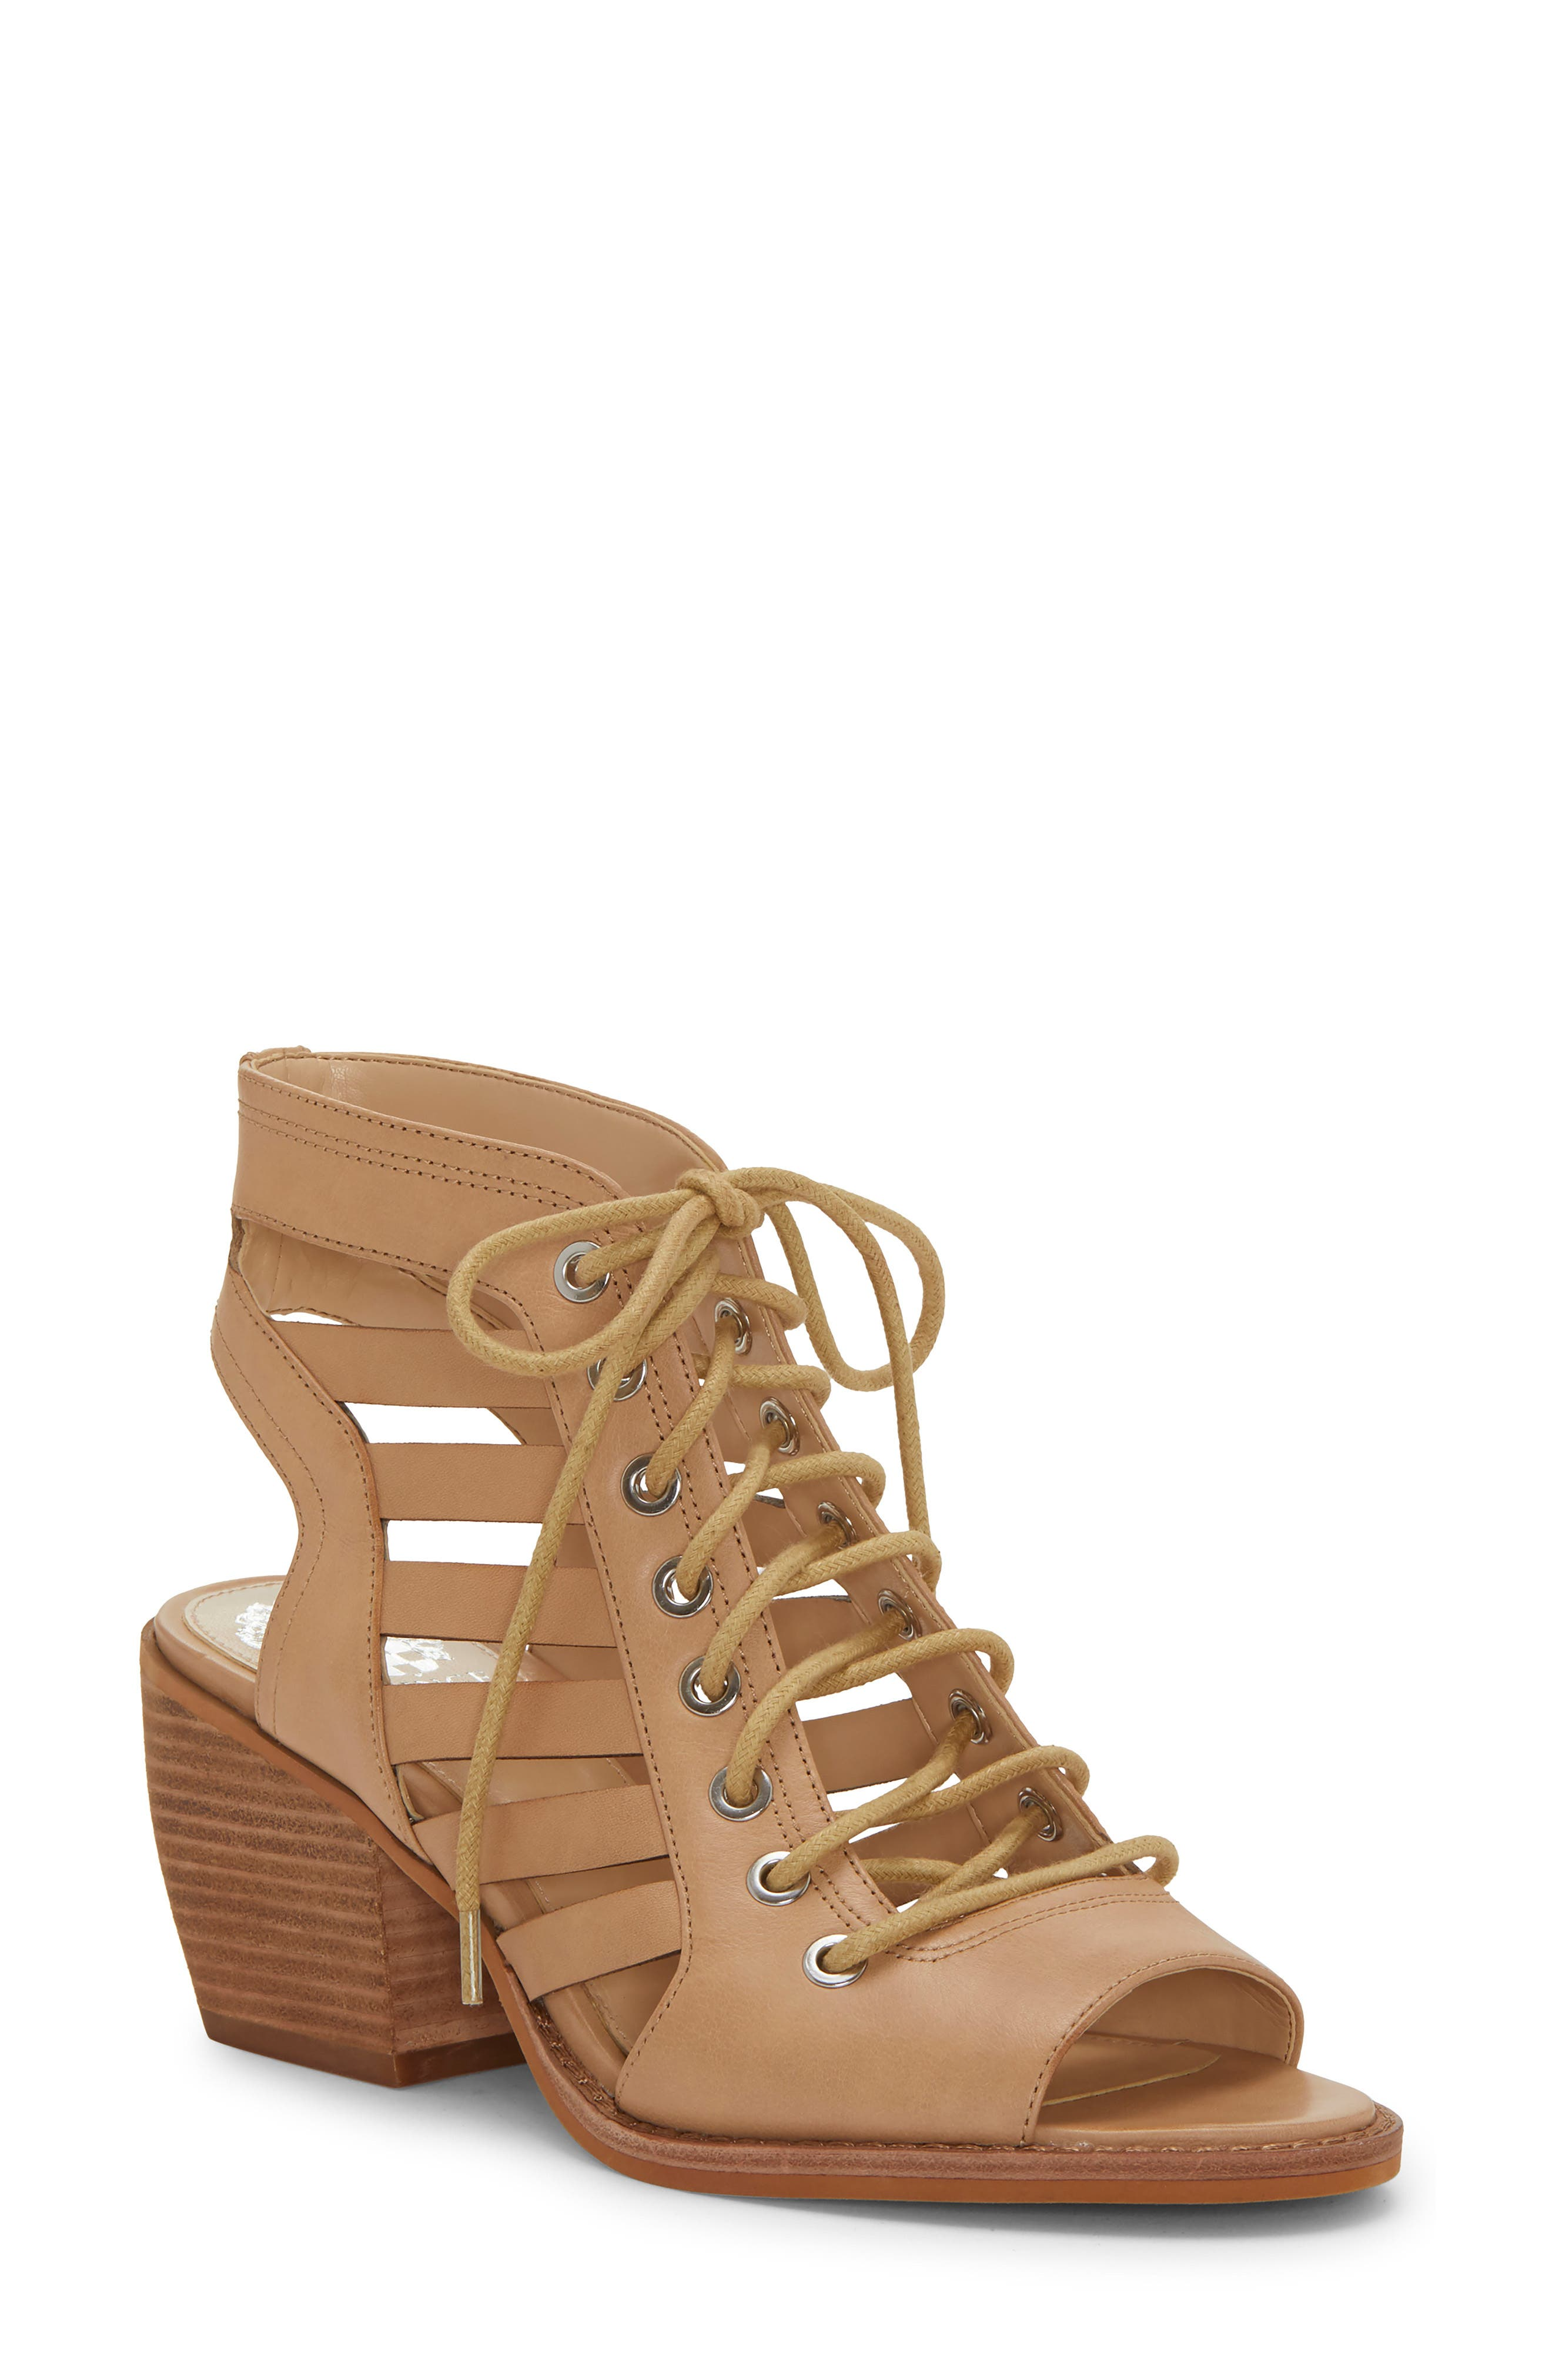 Vince Camuto Chesten Lace-Up Sandal- Beige